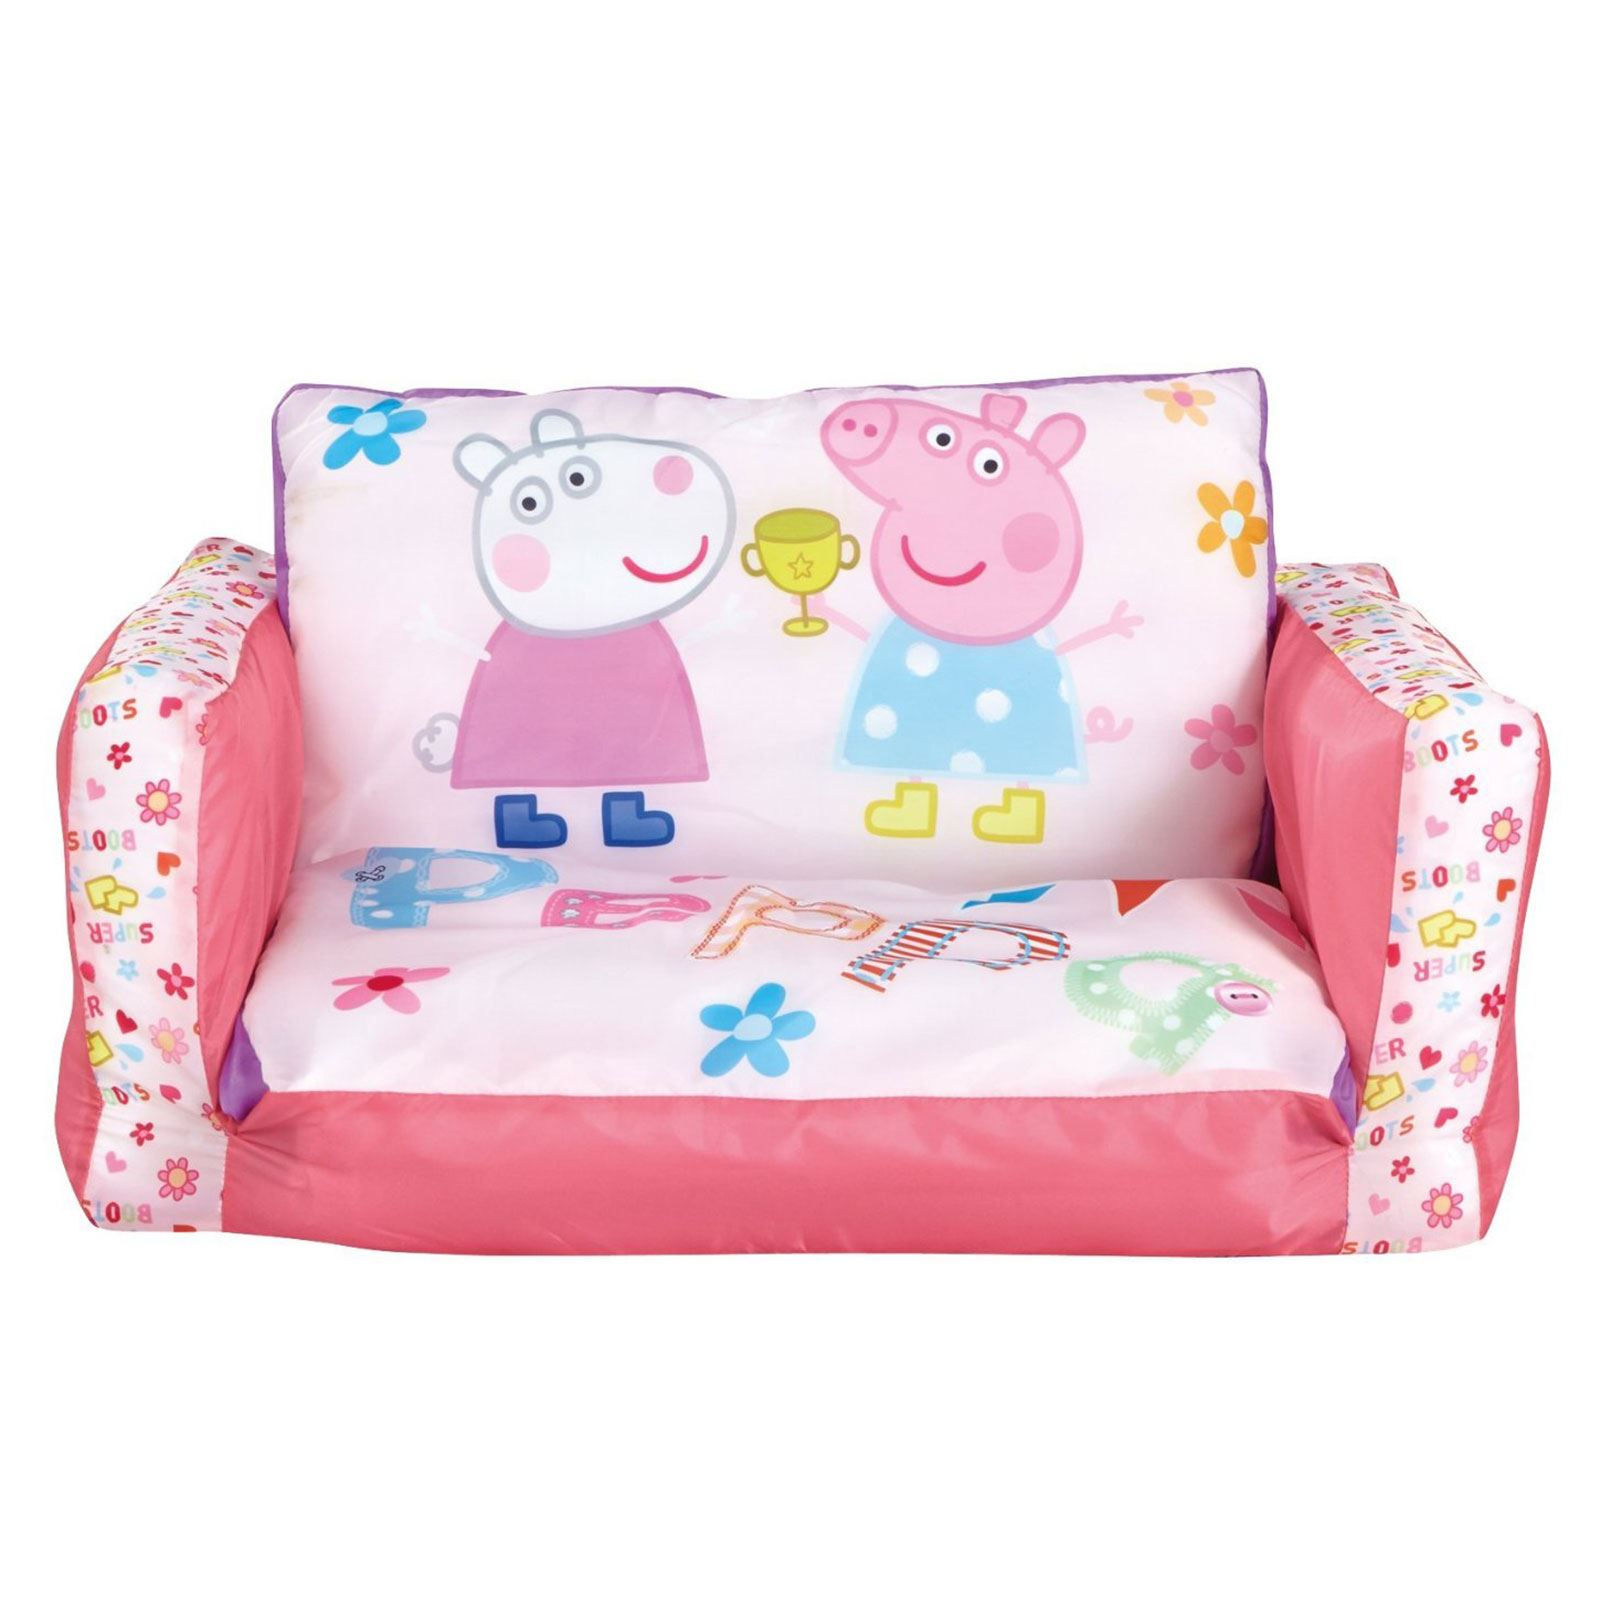 Flip Out Sofa Range Inflatable Kids Room New Minions Frozen Paw Patrol More Ebay